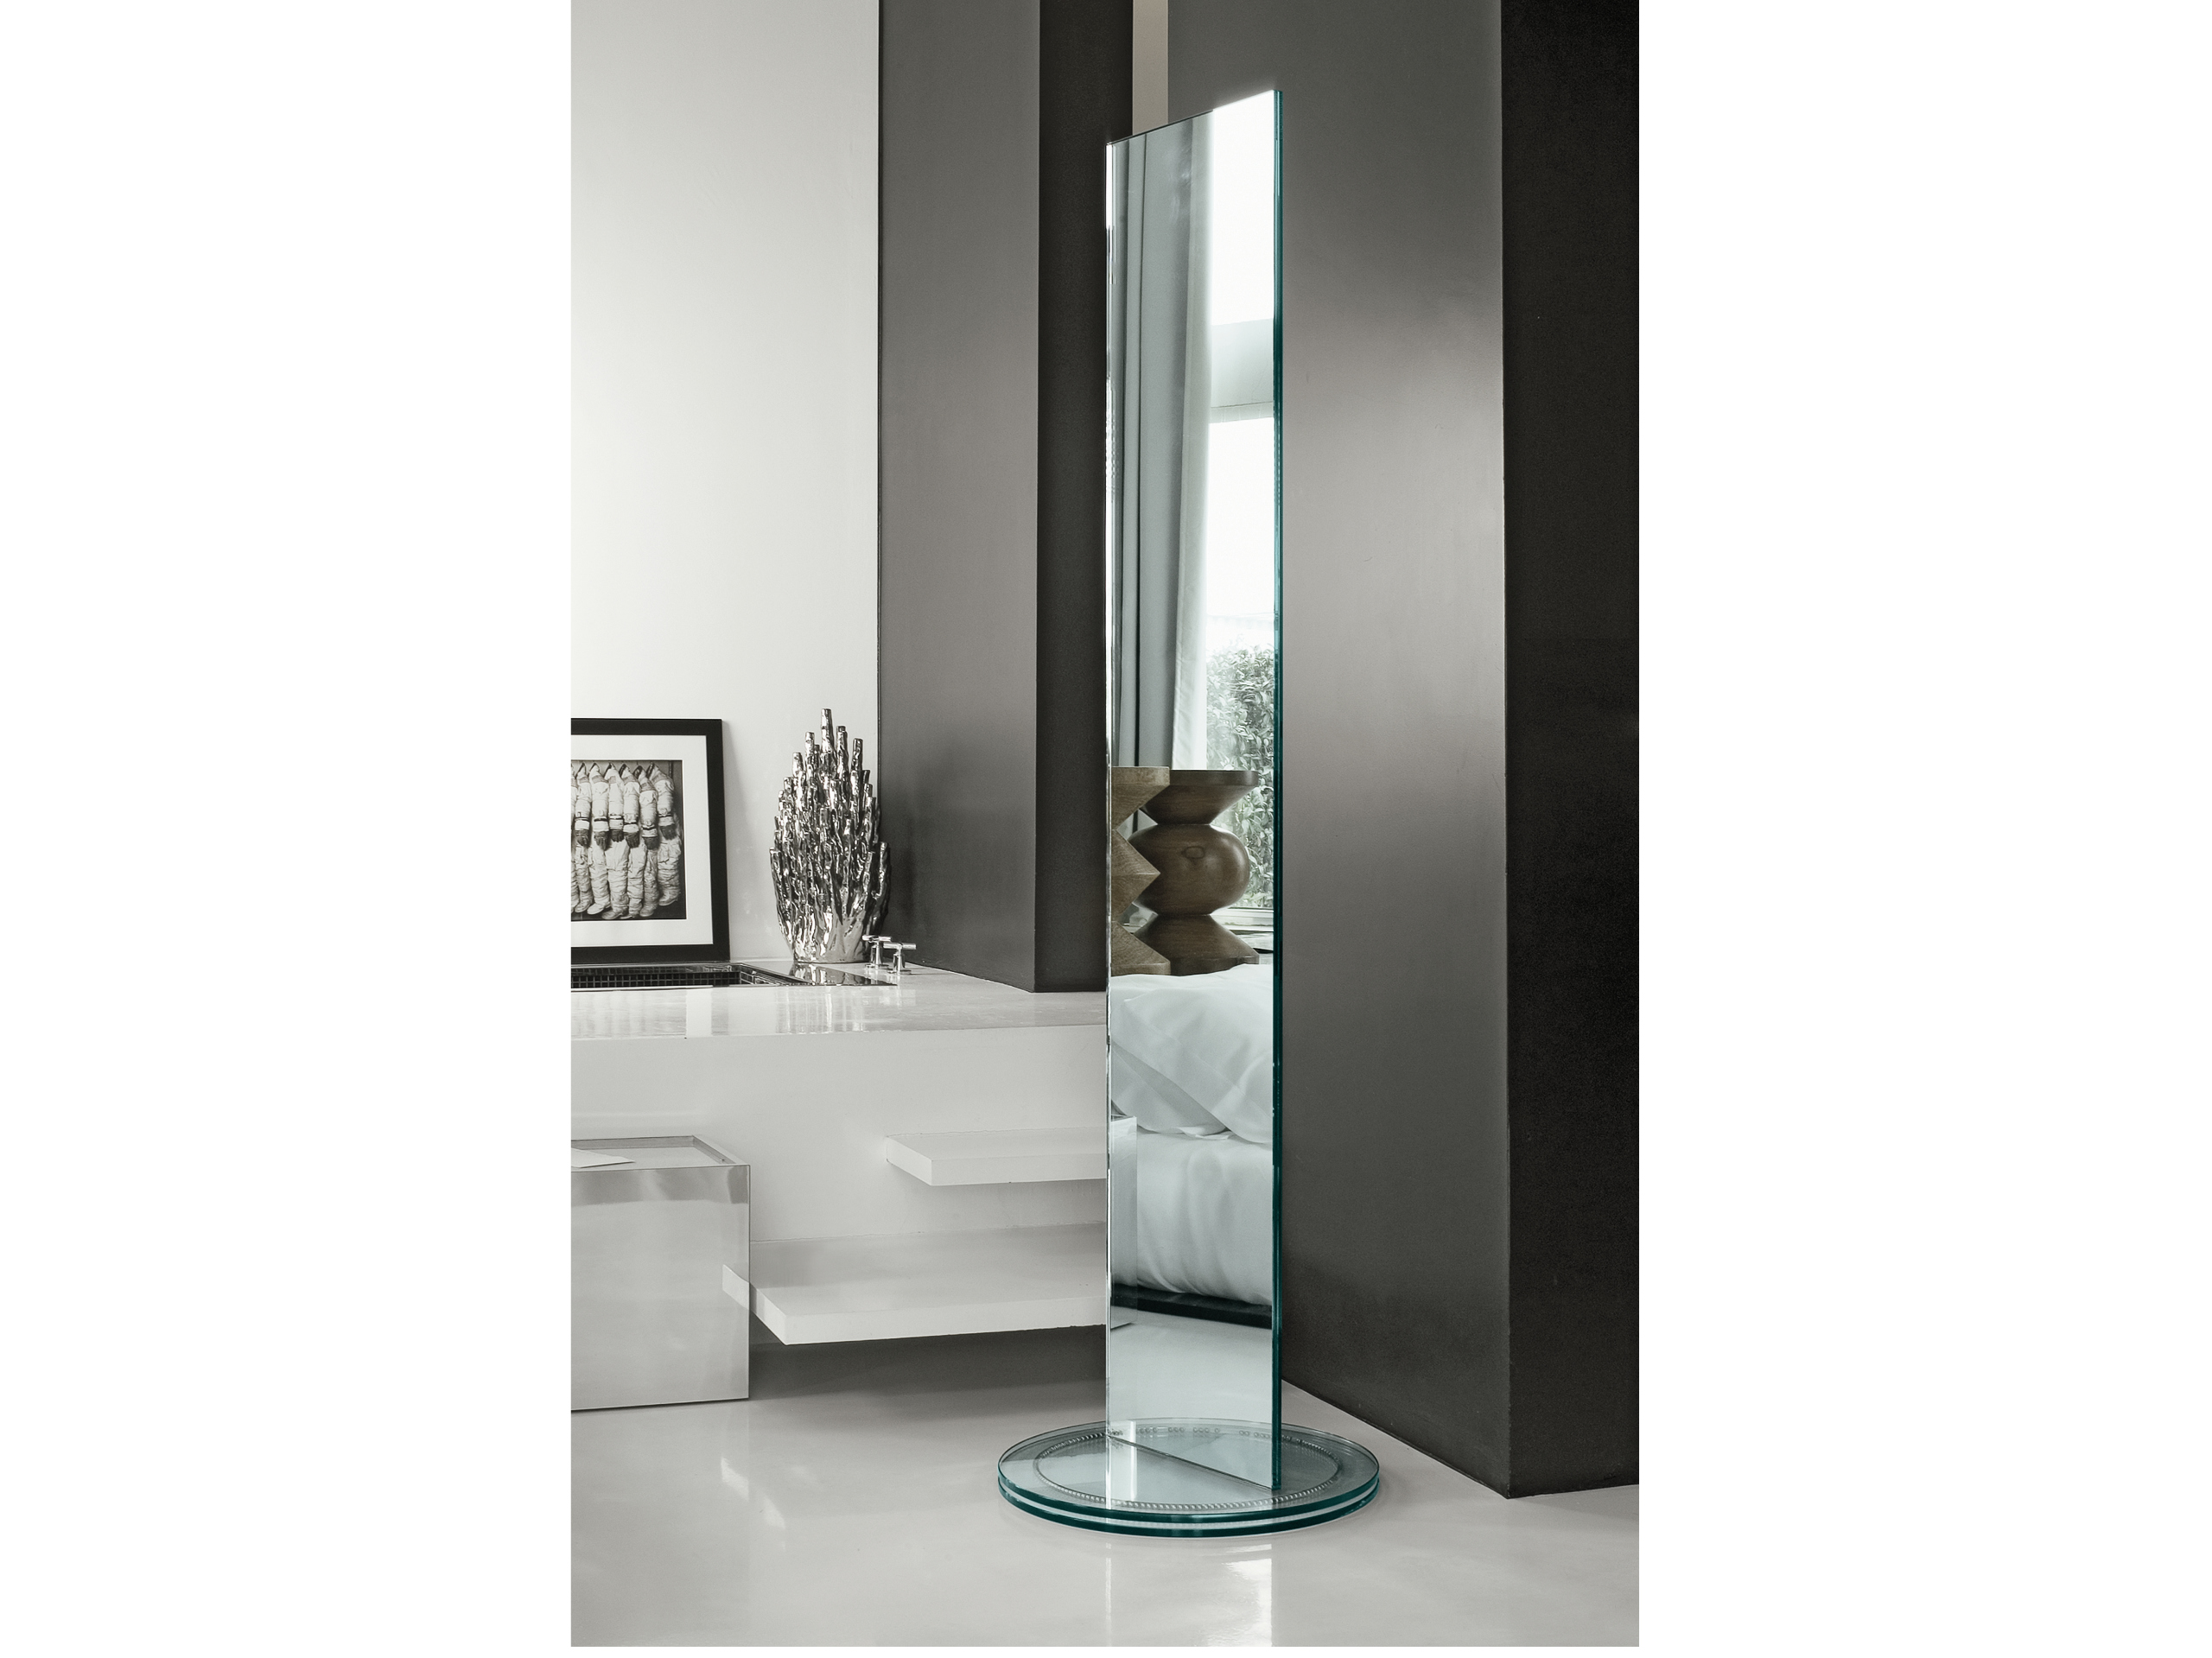 Miroir sur pied rectangulaire soglia by t d tonelli for Miroir rectangulaire design